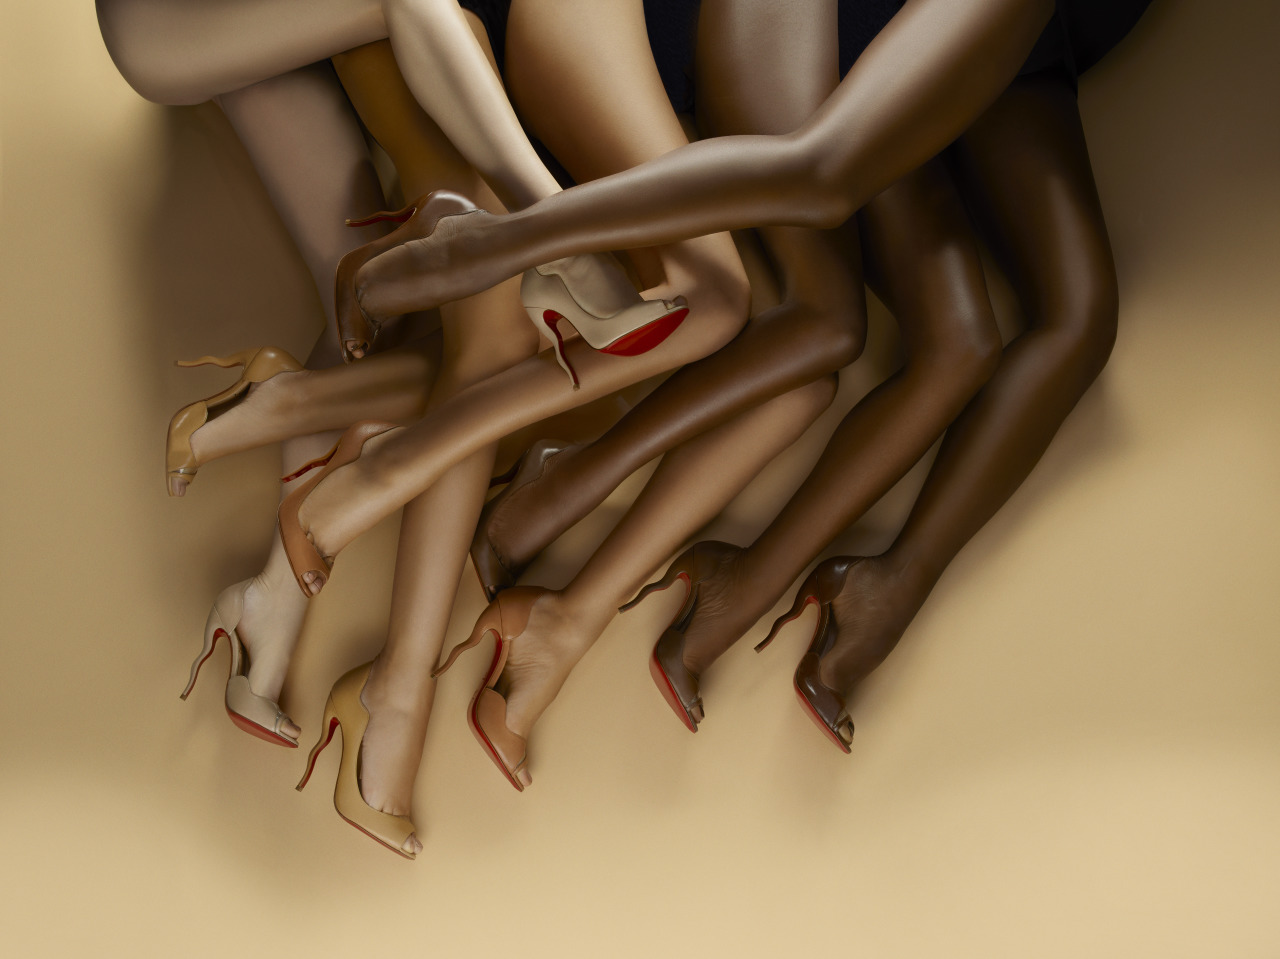 News - Christian Louboutin Online - Second Skin: Meet the Nudes